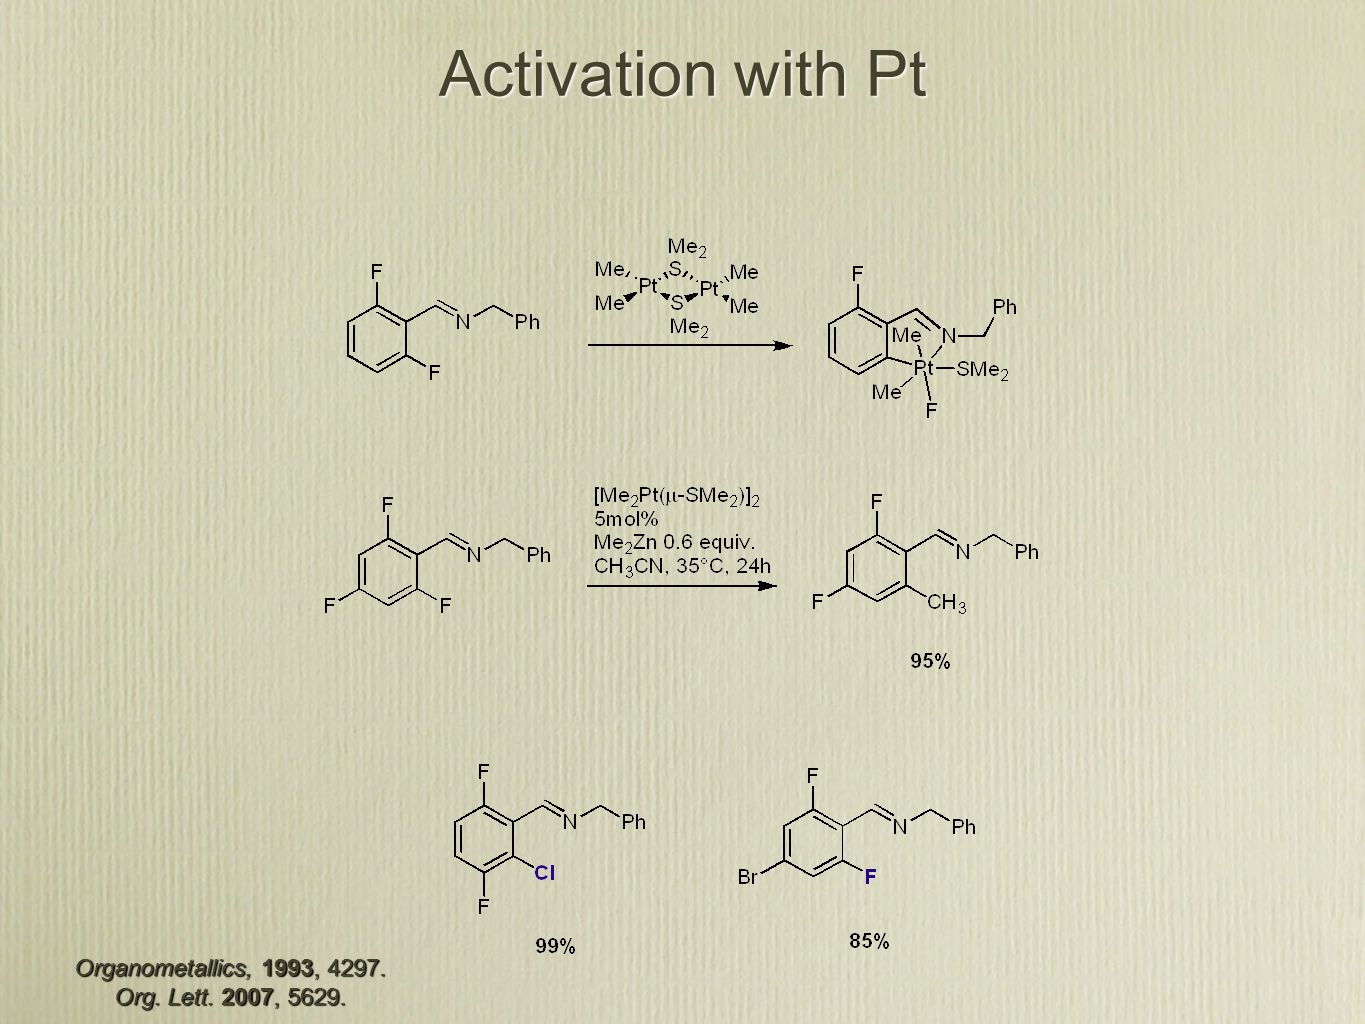 Activation with Pt Organometallics, 1993, Org. Lett. 2007, 5629.